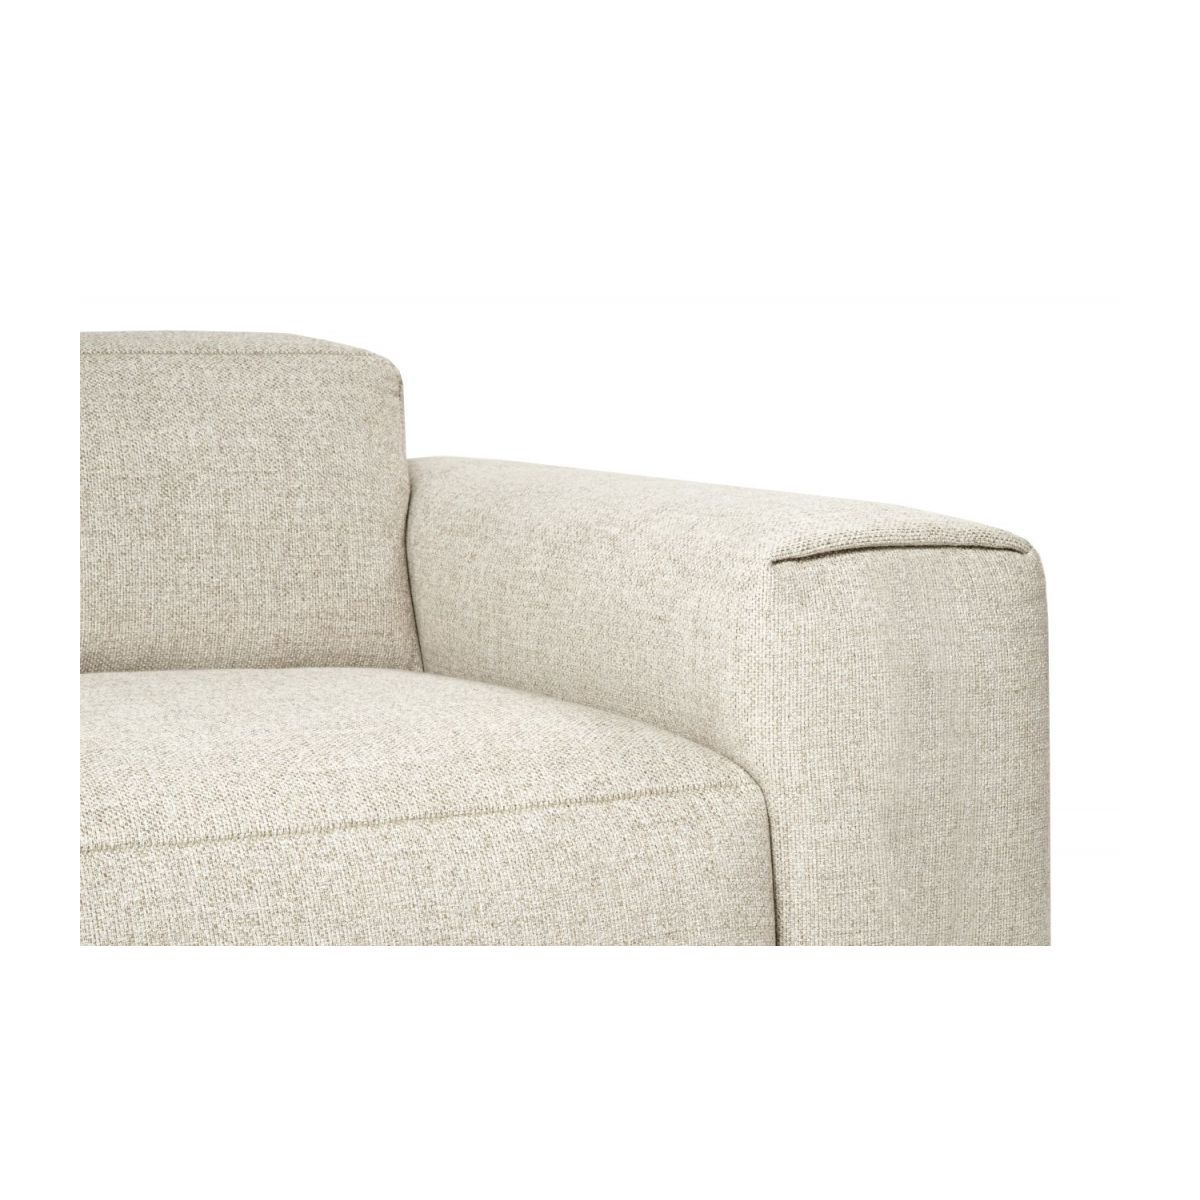 4 seater sofa in Lecce fabric, nature n°7